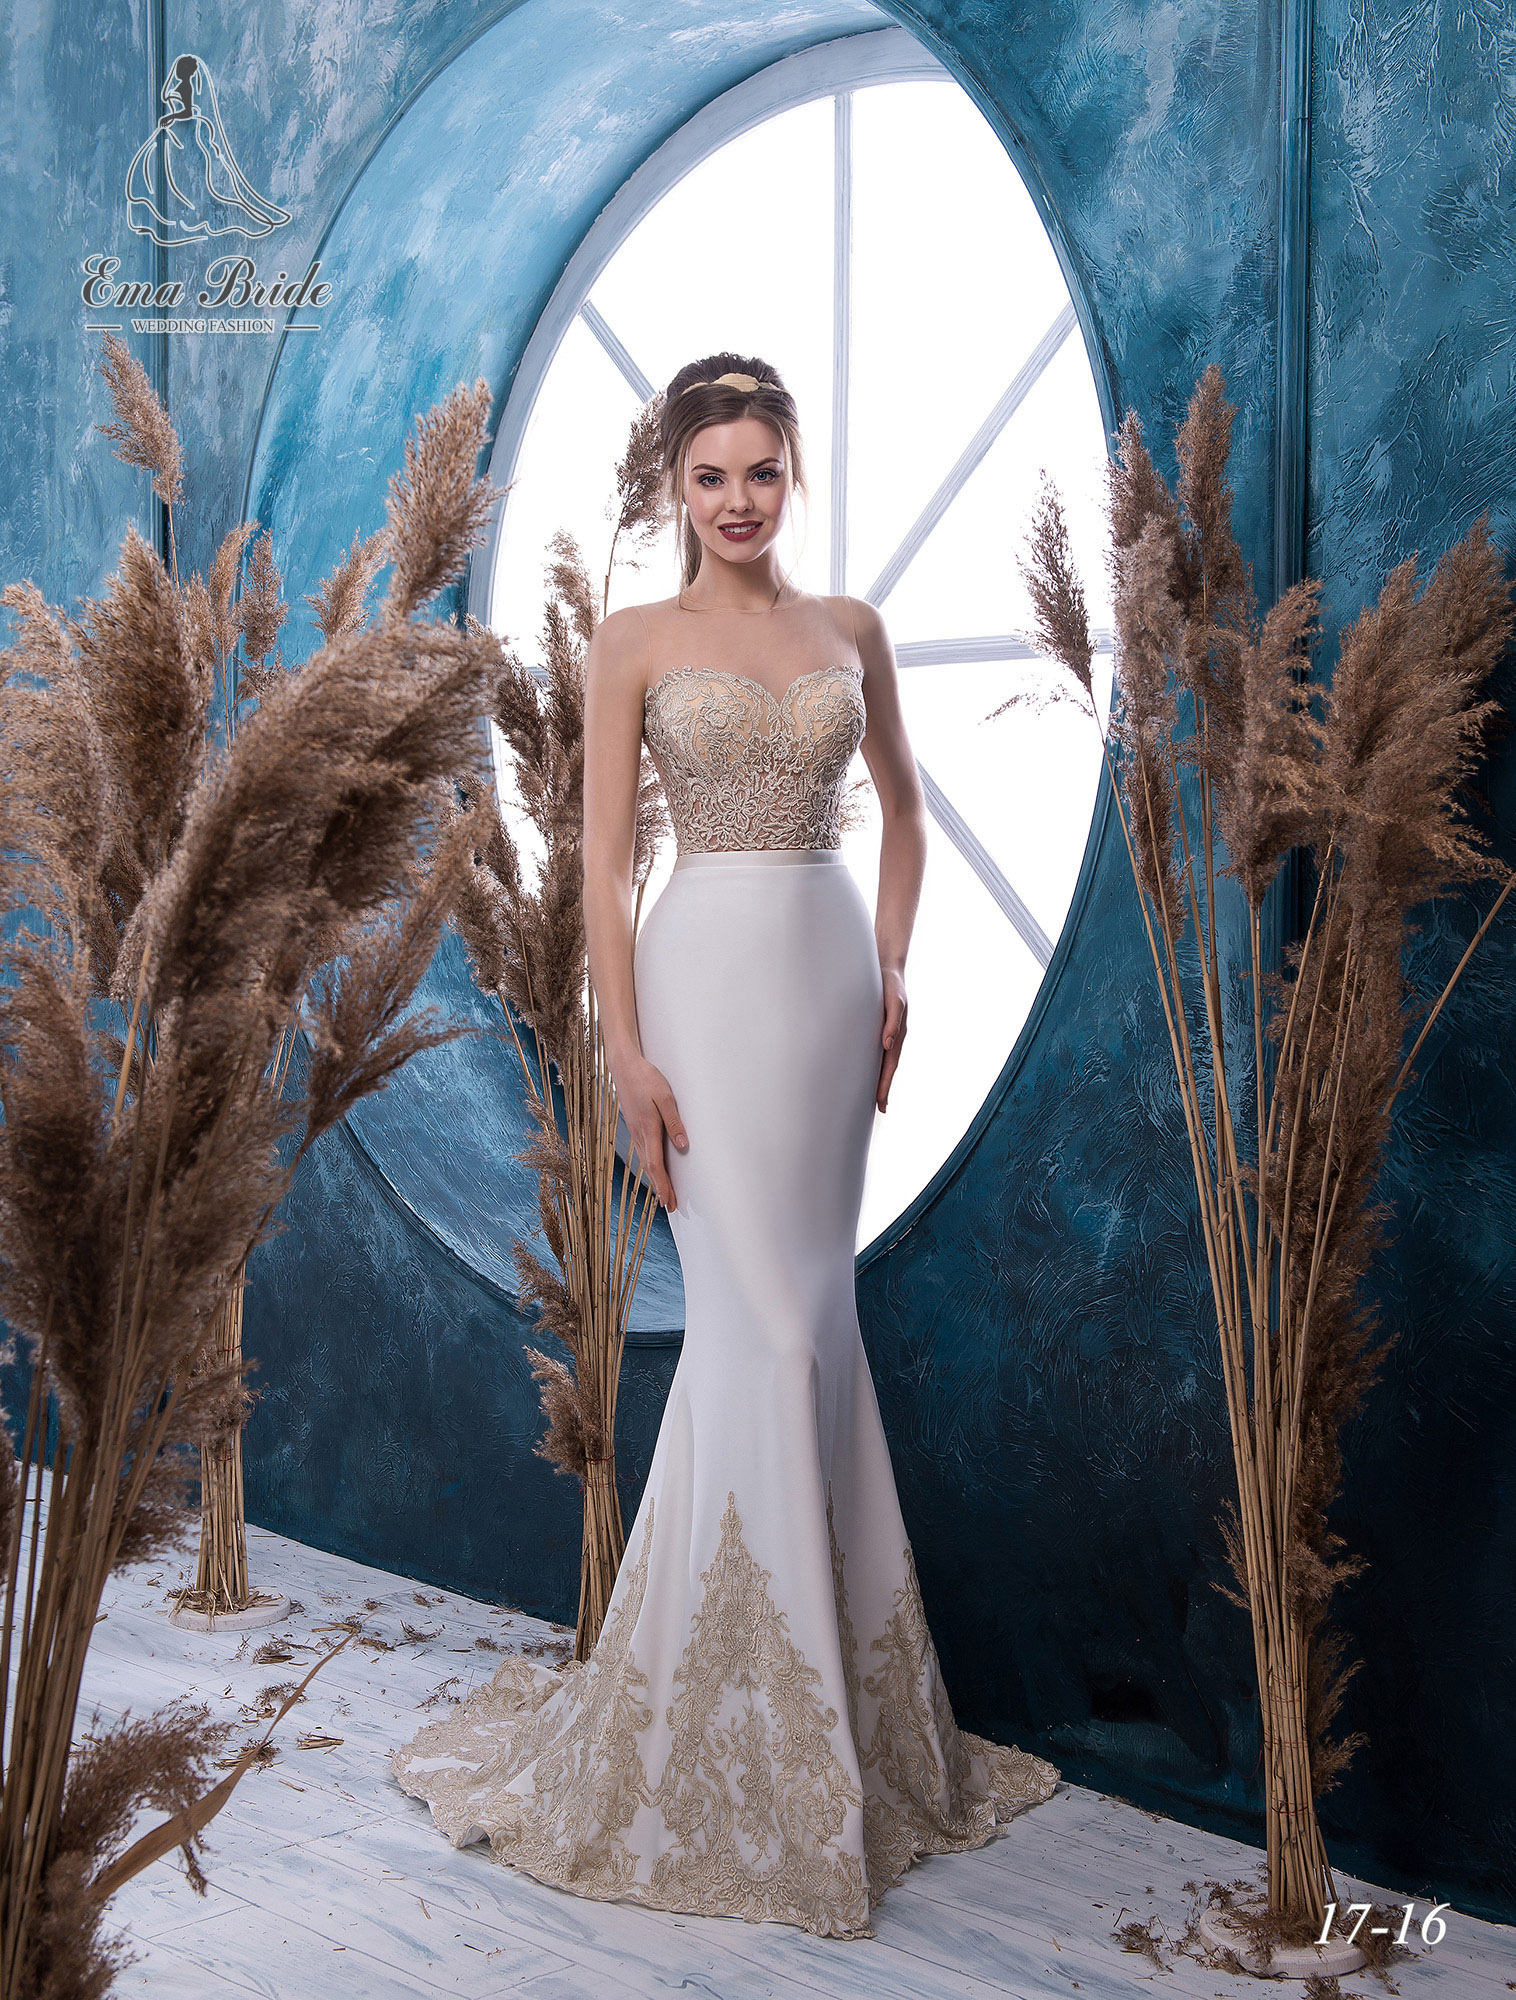 Bustier wedding dress with gold embroidery